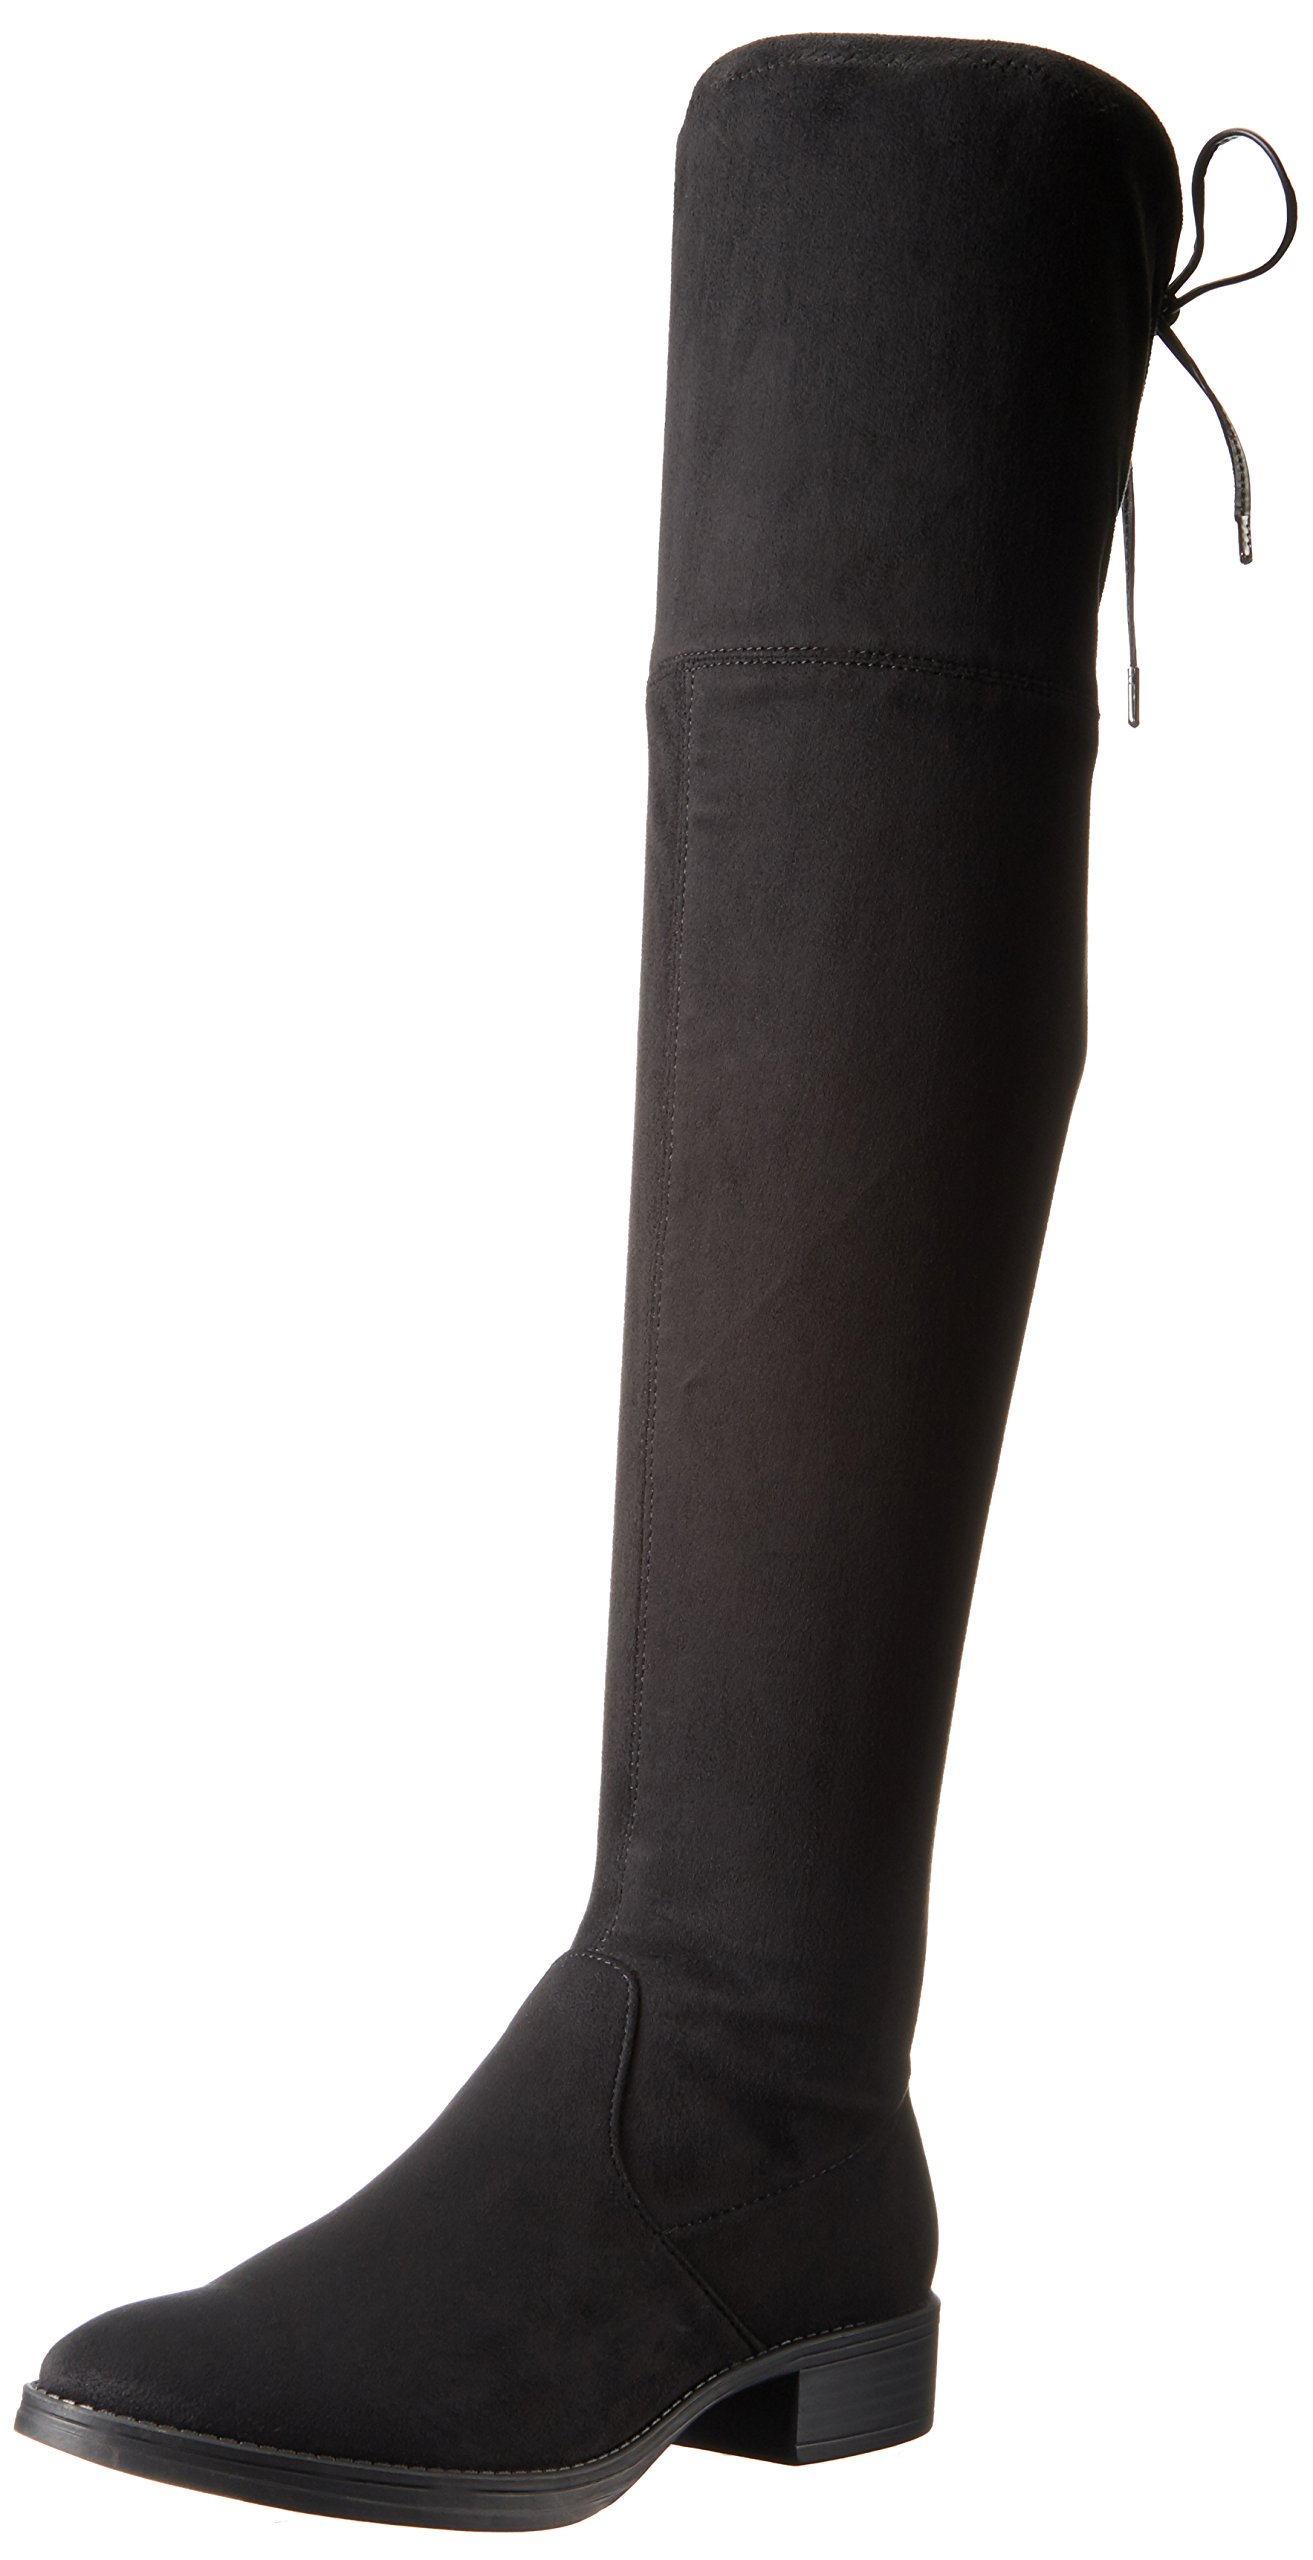 Circus by Sam Edelman Women's Peyton Over The Knee Boot, Black, 6.5 Medium US by Circus by Sam Edelman (Image #1)